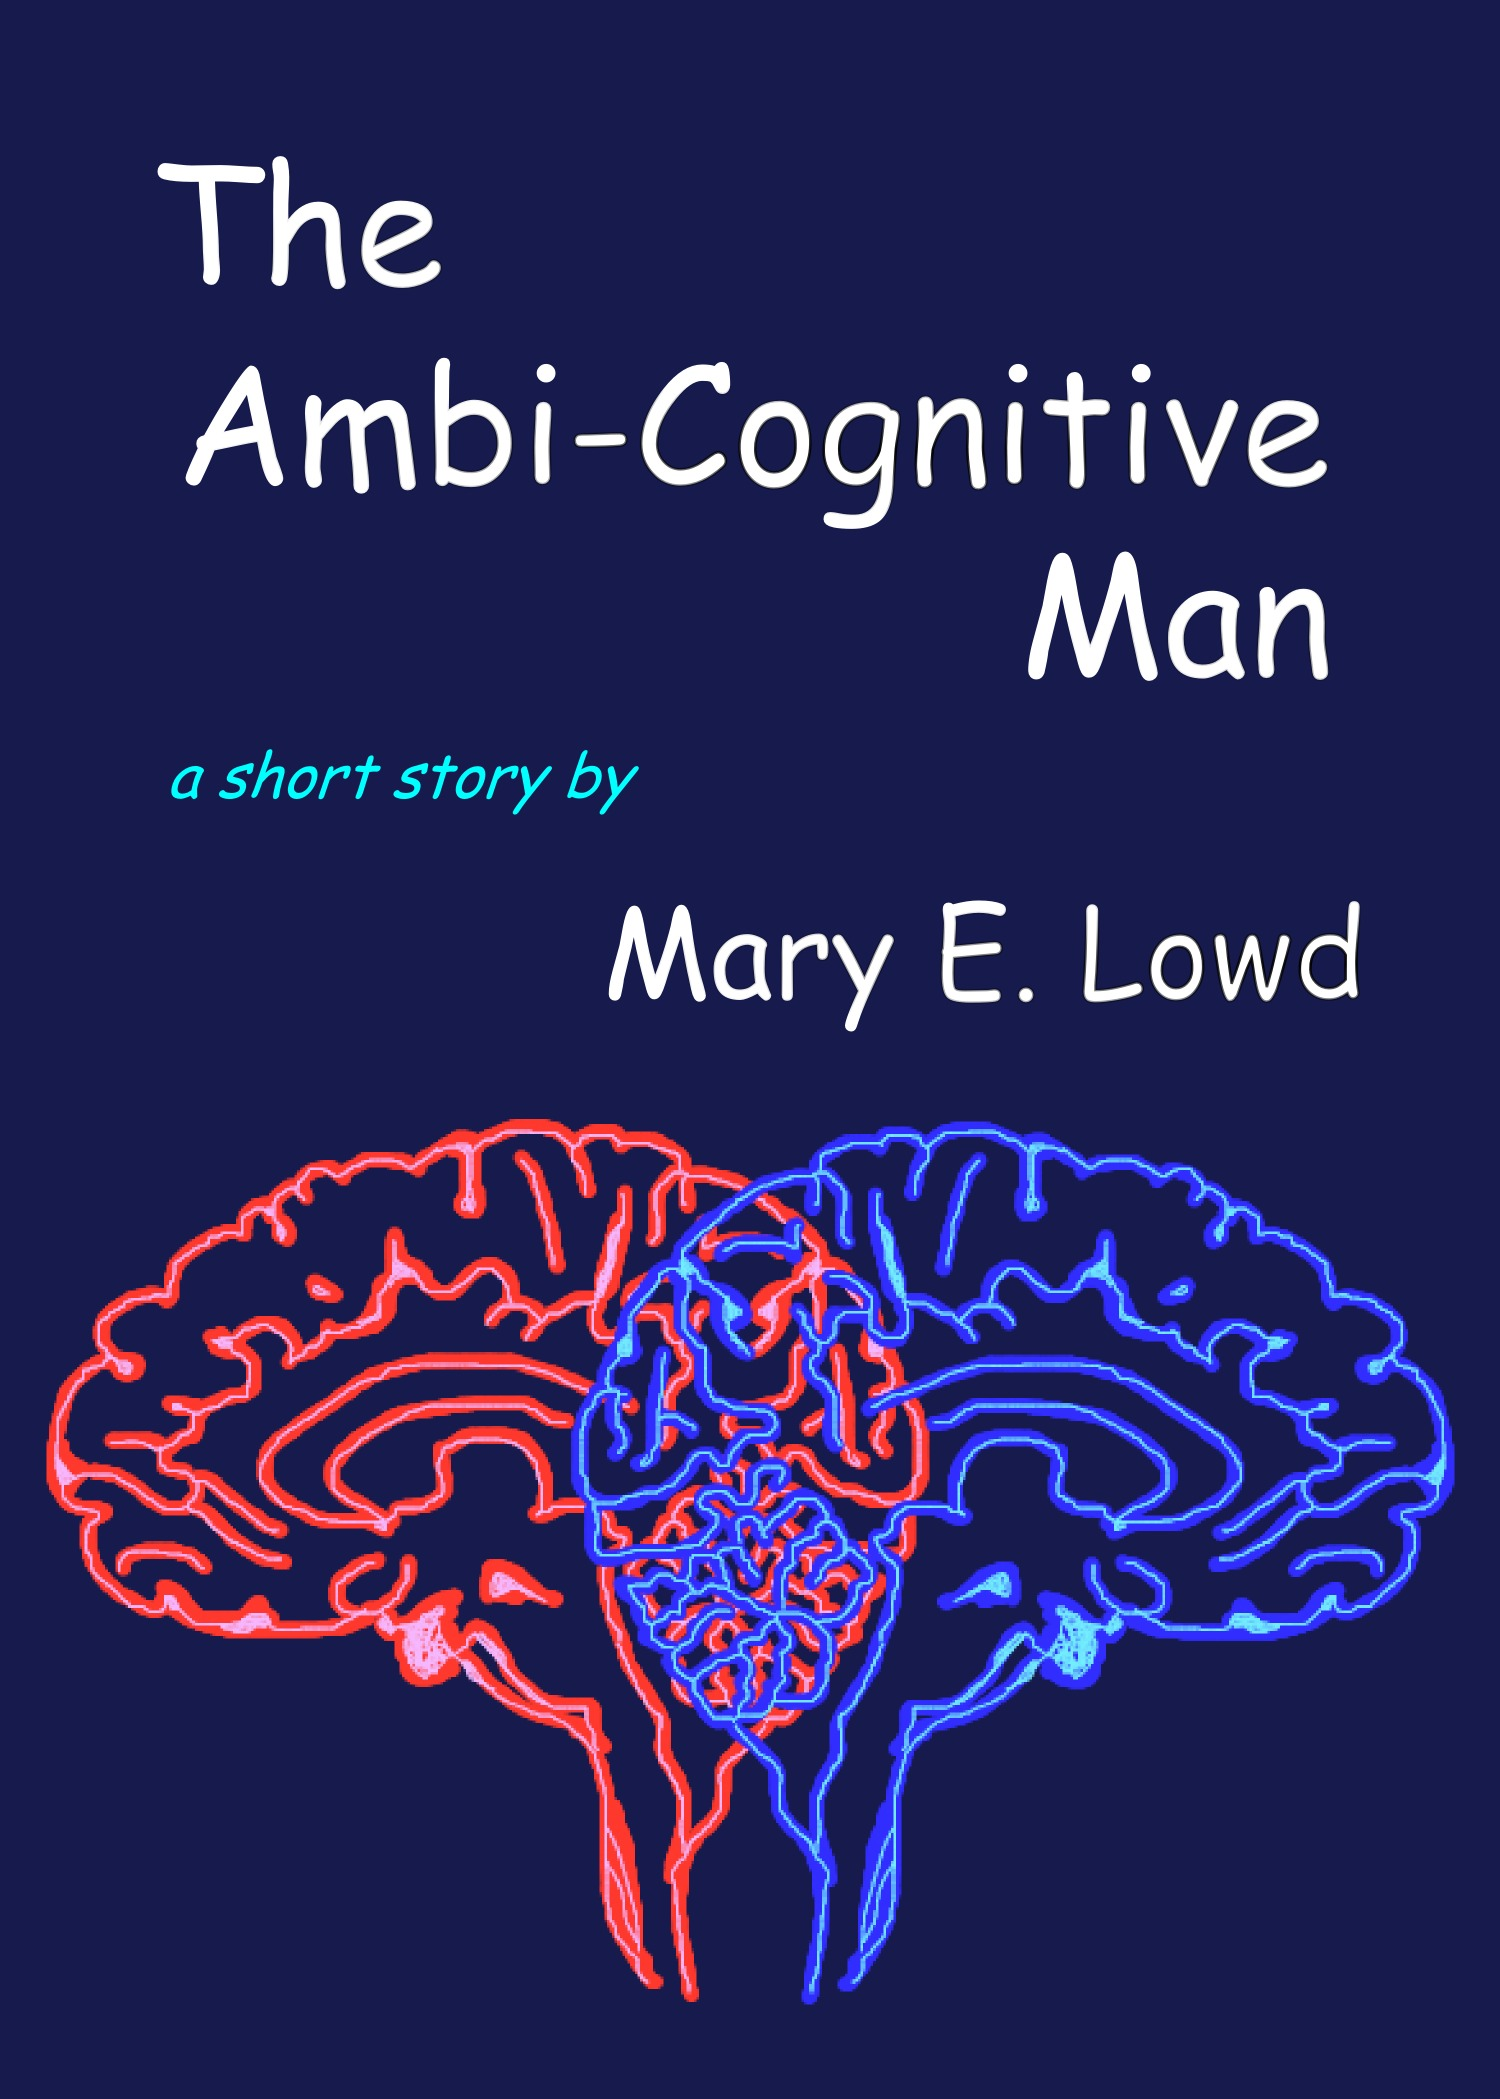 The Ambi-Cognitive Man